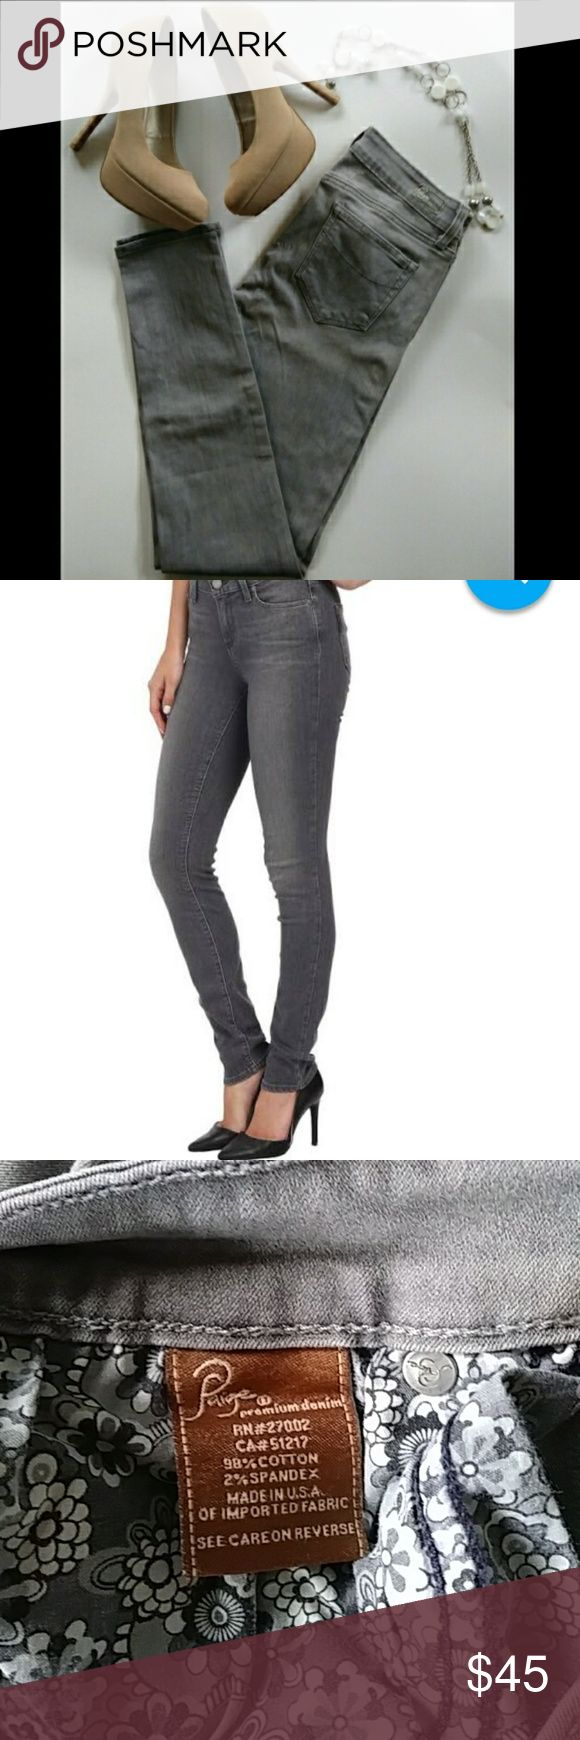 """💎PAIGE SIZE 27 VERDUGO JEGGING GRAY JEANS💎 Stretchy & Comfy Jeggings 🎀 Pair with some sexy pumps Like New w/ no stains rips or tears!!!! 💎   🌹(shoes in pic are 4 sale too!!!)🌹   Size: 27 Inseam: 29"""" Leg Opening: 5"""" Color: Gray   Any Questions About These Cute Jeans??? Feel Welcome To Let Me Know!!! 😊 Thank You For Shopping At My Closet & Stay Beautiful!!! 💋💋💋    🚫No Trades 👍Open 2 Offers PAIGE Jeans Skinny"""